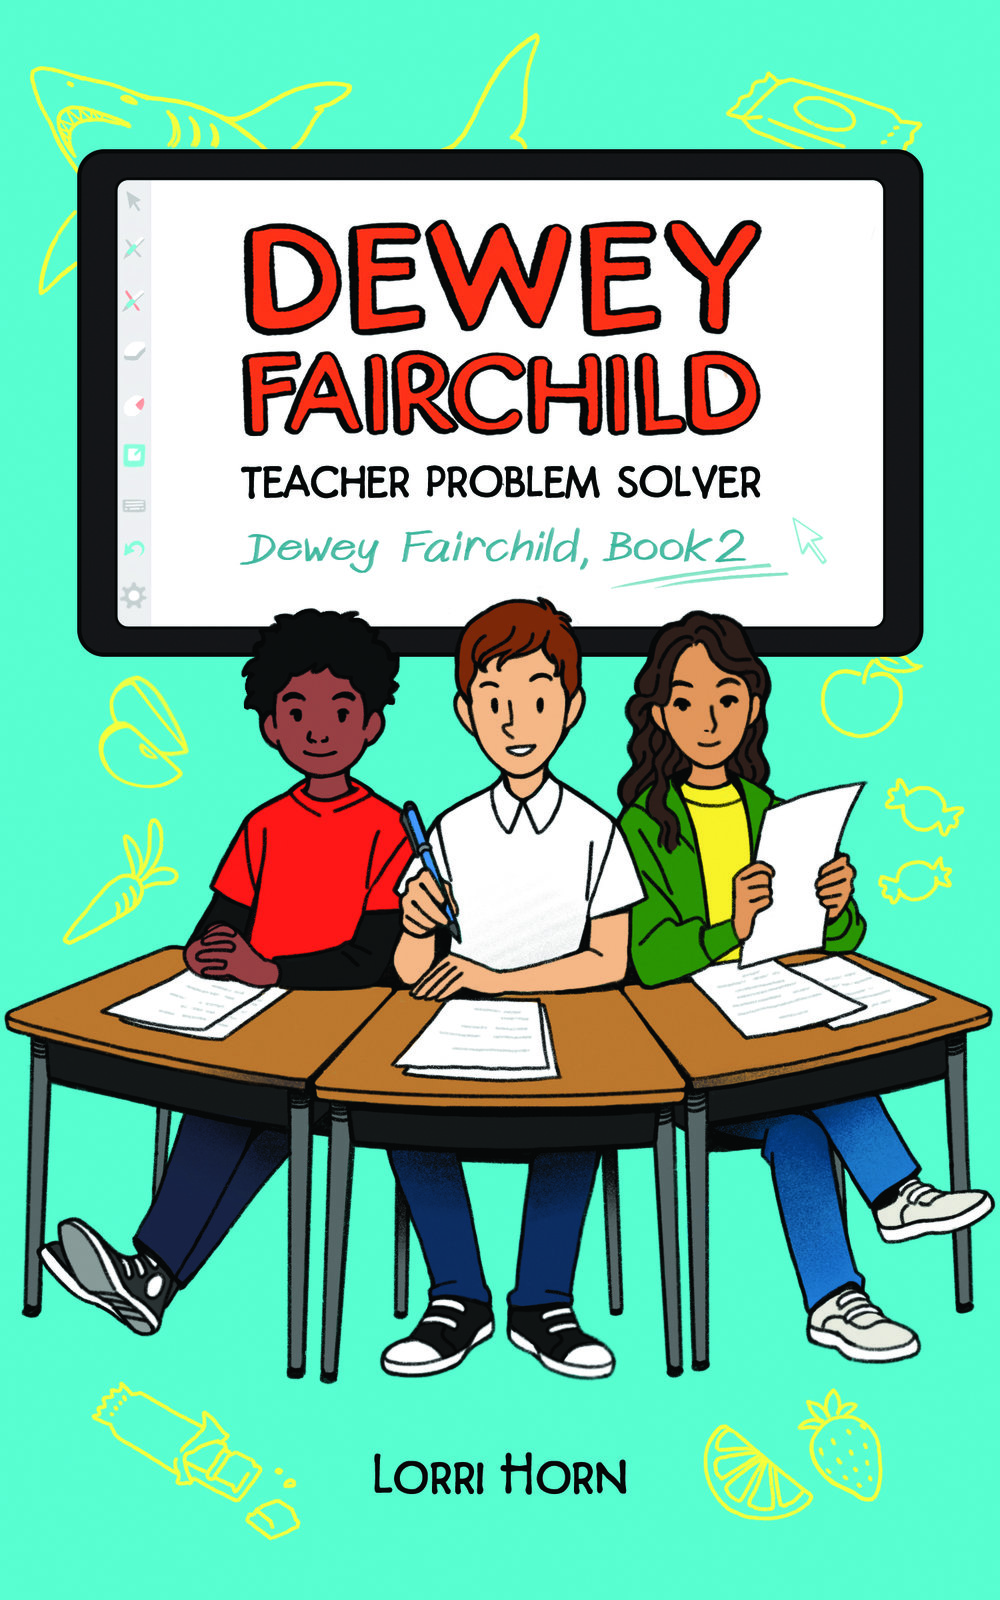 Horn Lorri DEWEY FAIRCHILD TEACHER PROBLEM SOLVER retail cover 2D version 20180928.jpg